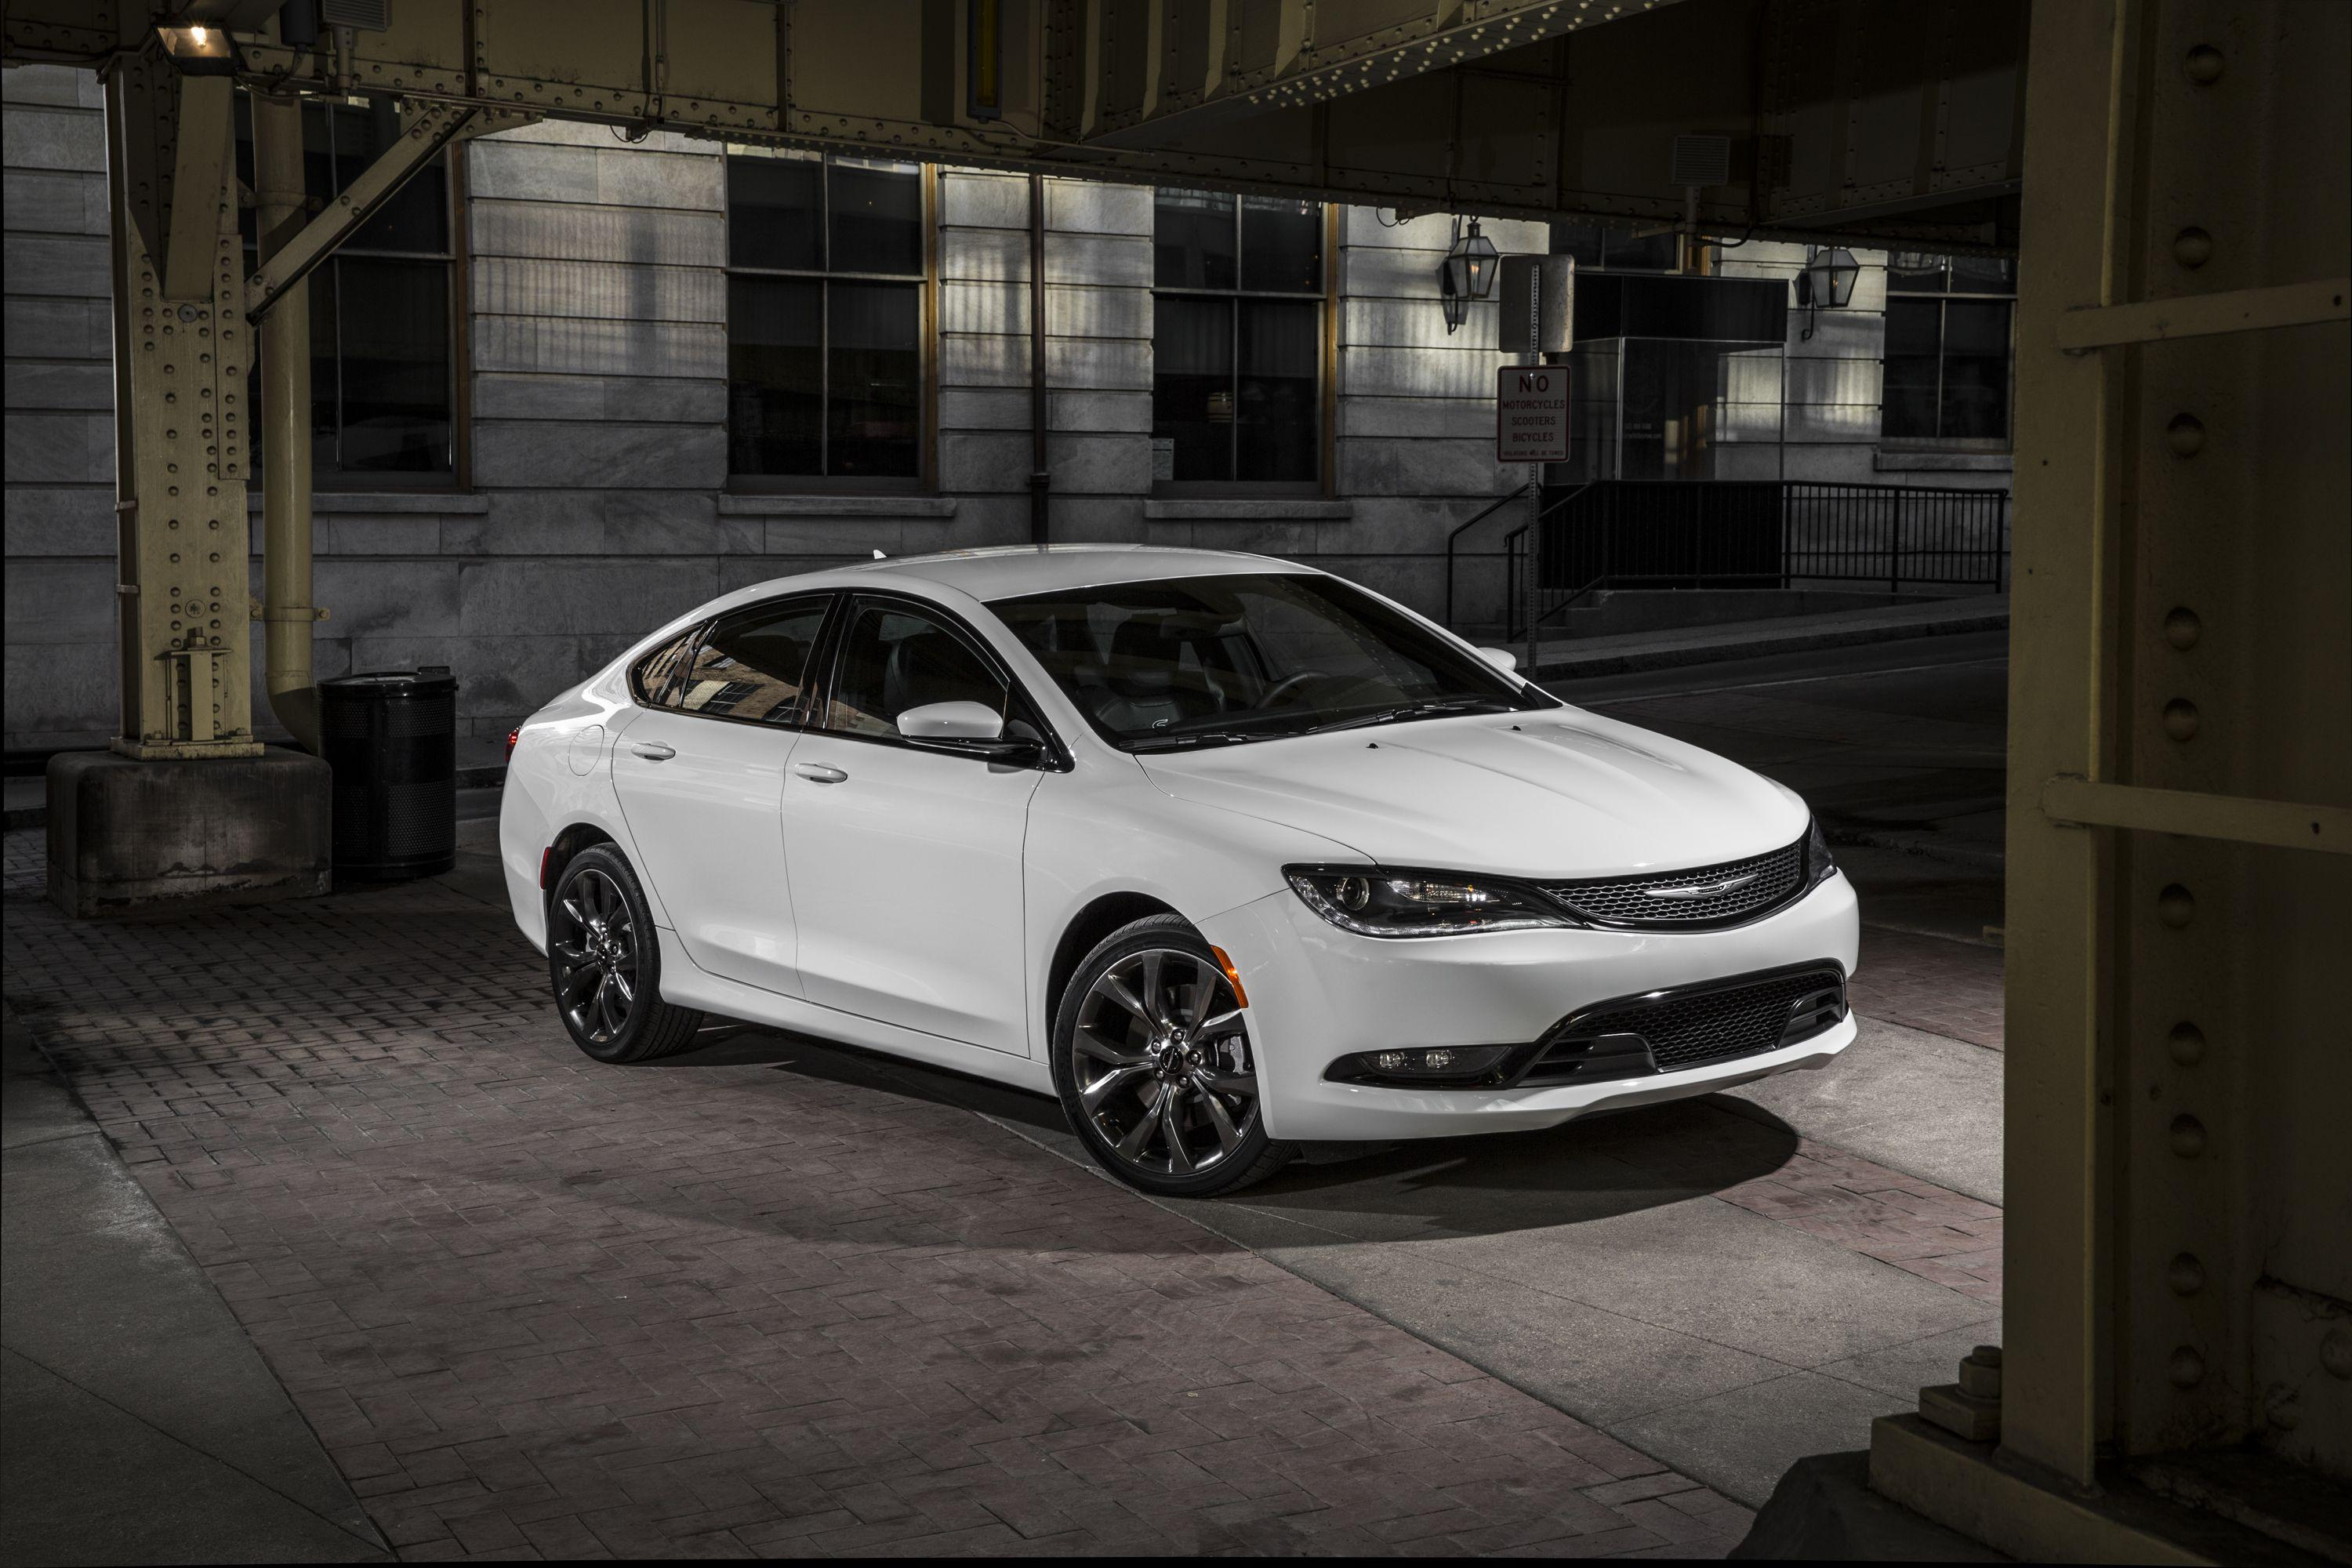 Chrysler 200 Wallpapers and Backgrounds Image